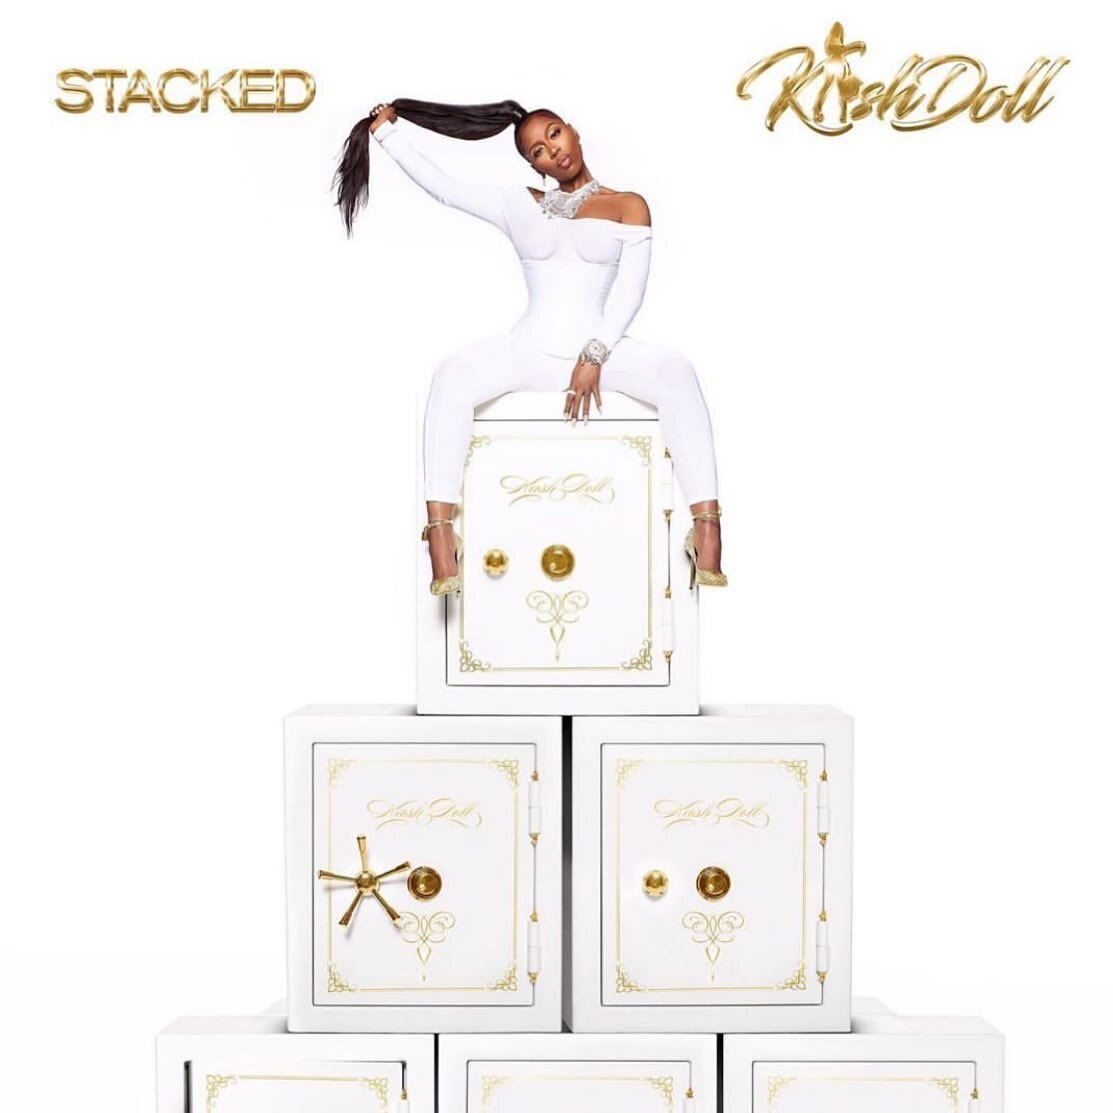 """Kash Doll """"Stacked"""""""